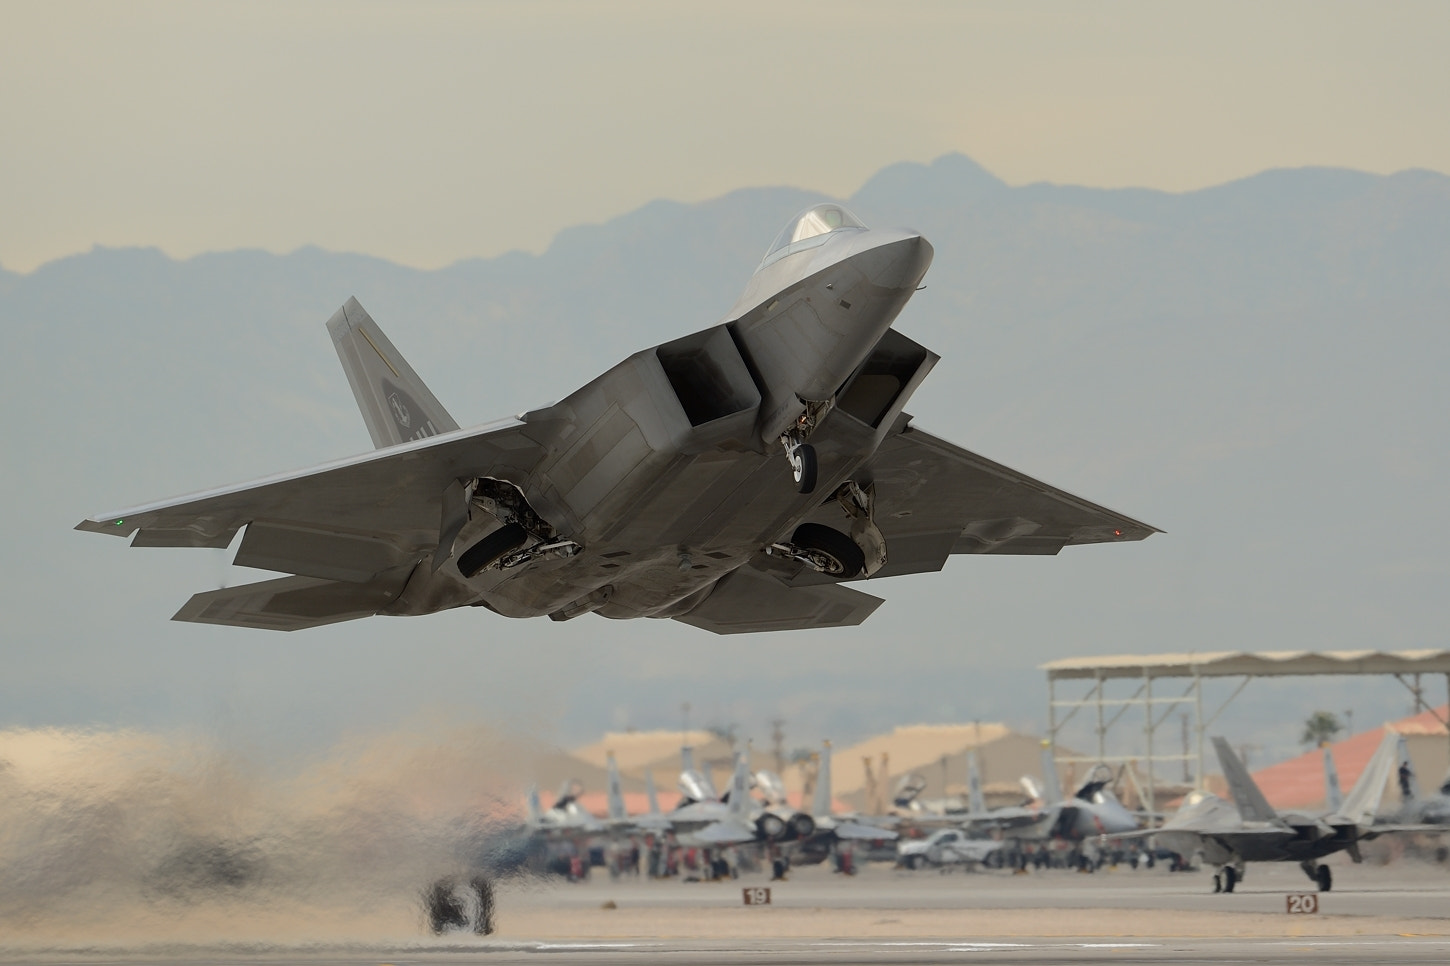 Photograph Hawaii ANG F-22 Raptor by leadingedgeimages on 500px